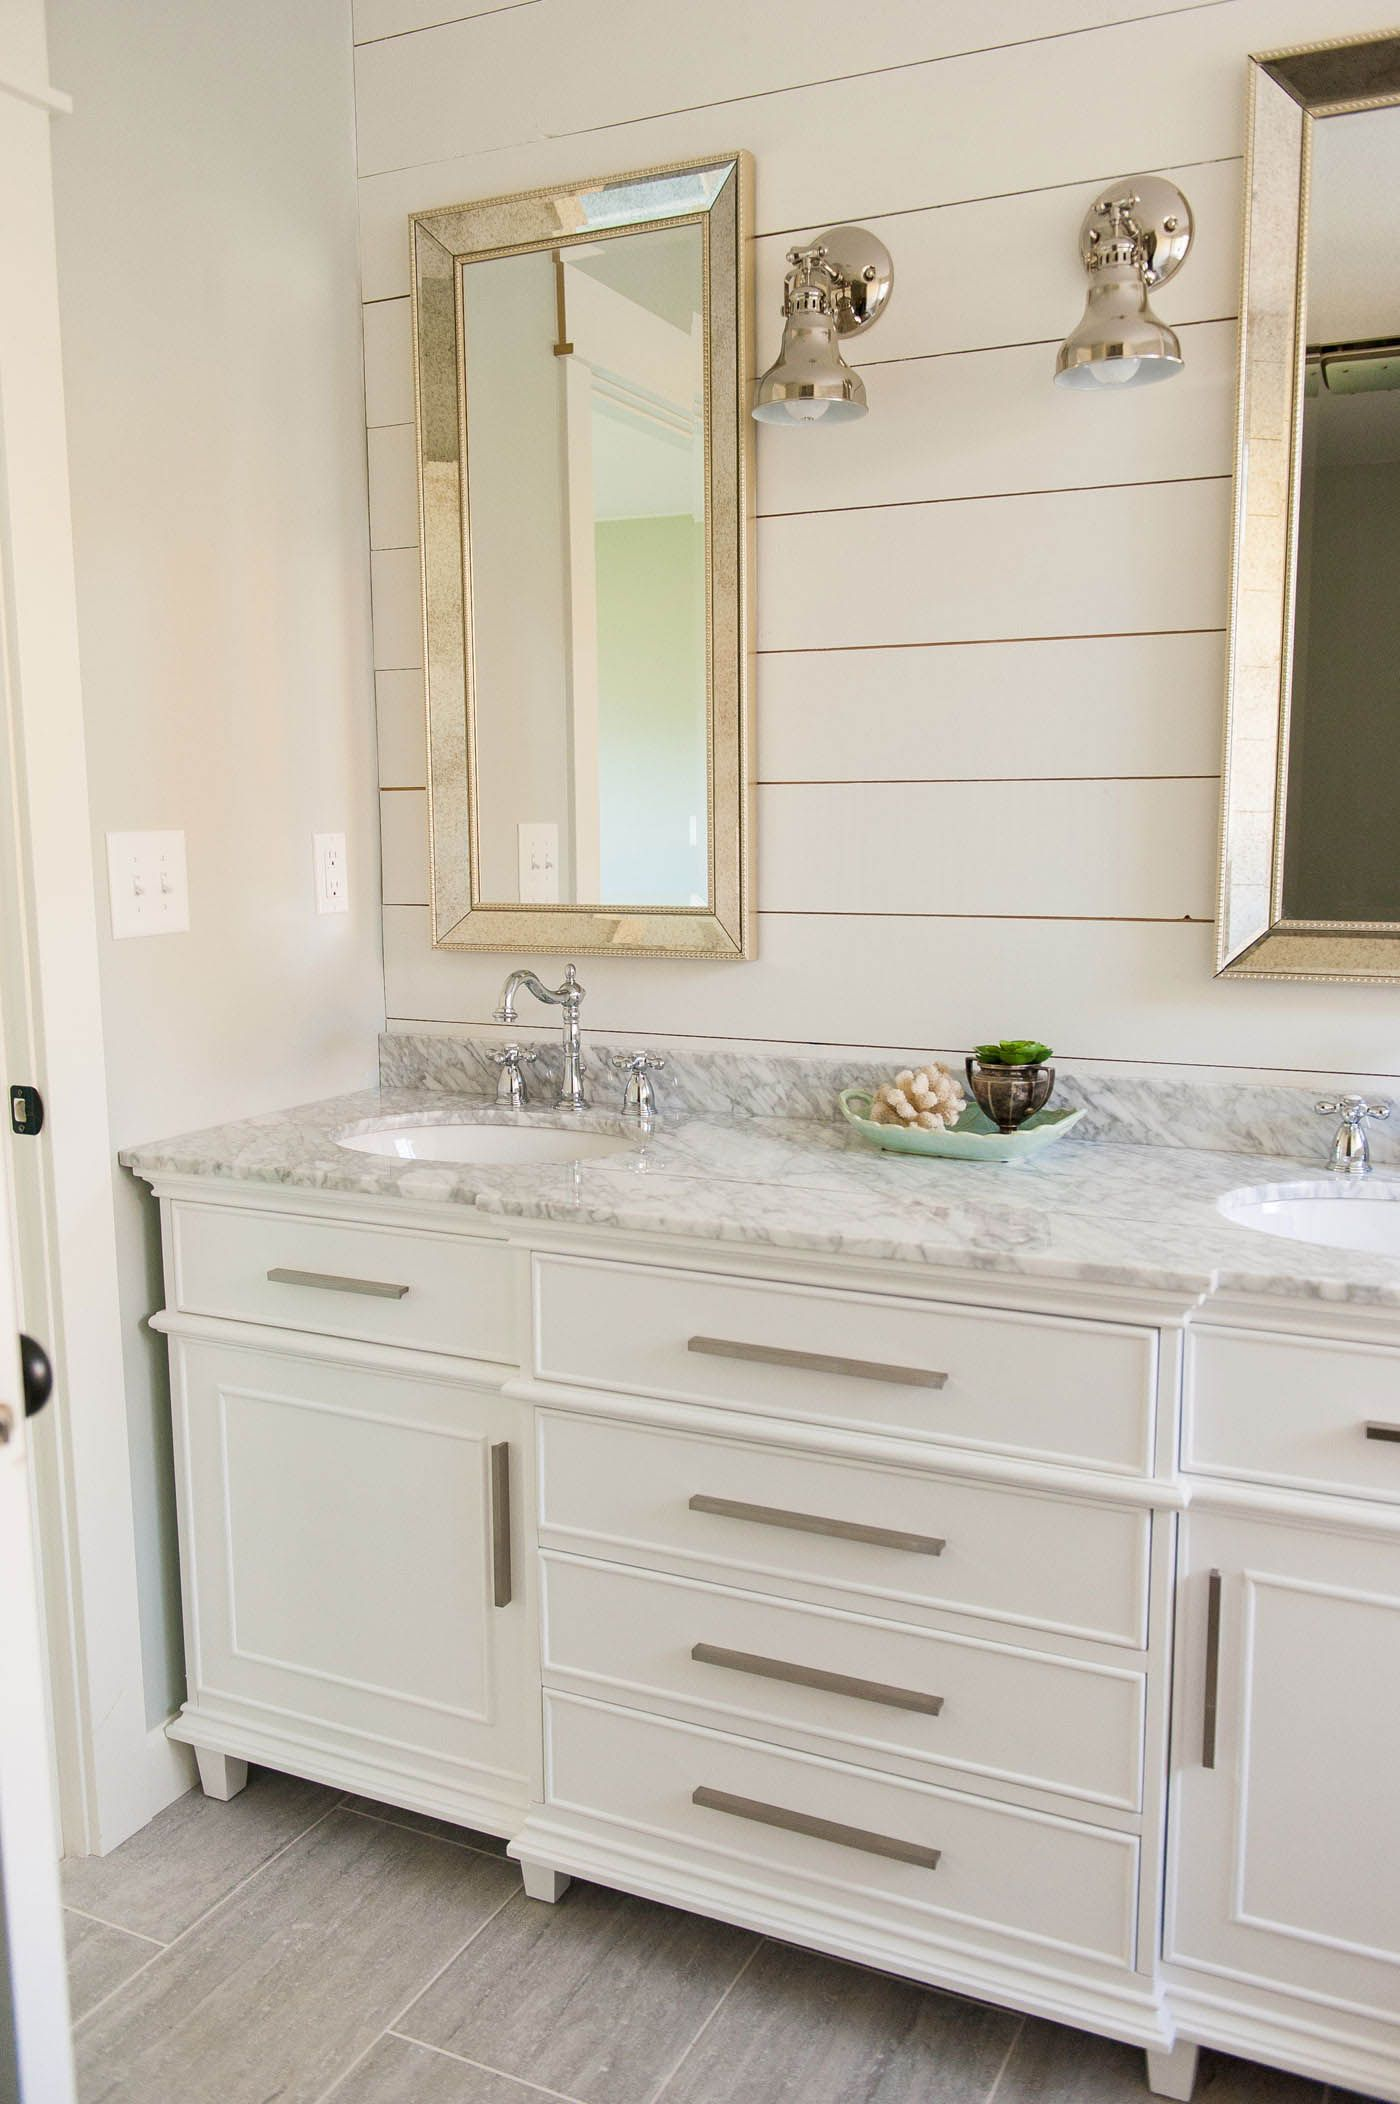 The Ultimate Guide To Buying A Bathroom Vanity Double Vanity Bathroom Bathrooms Remodel Half Bathroom Remodel